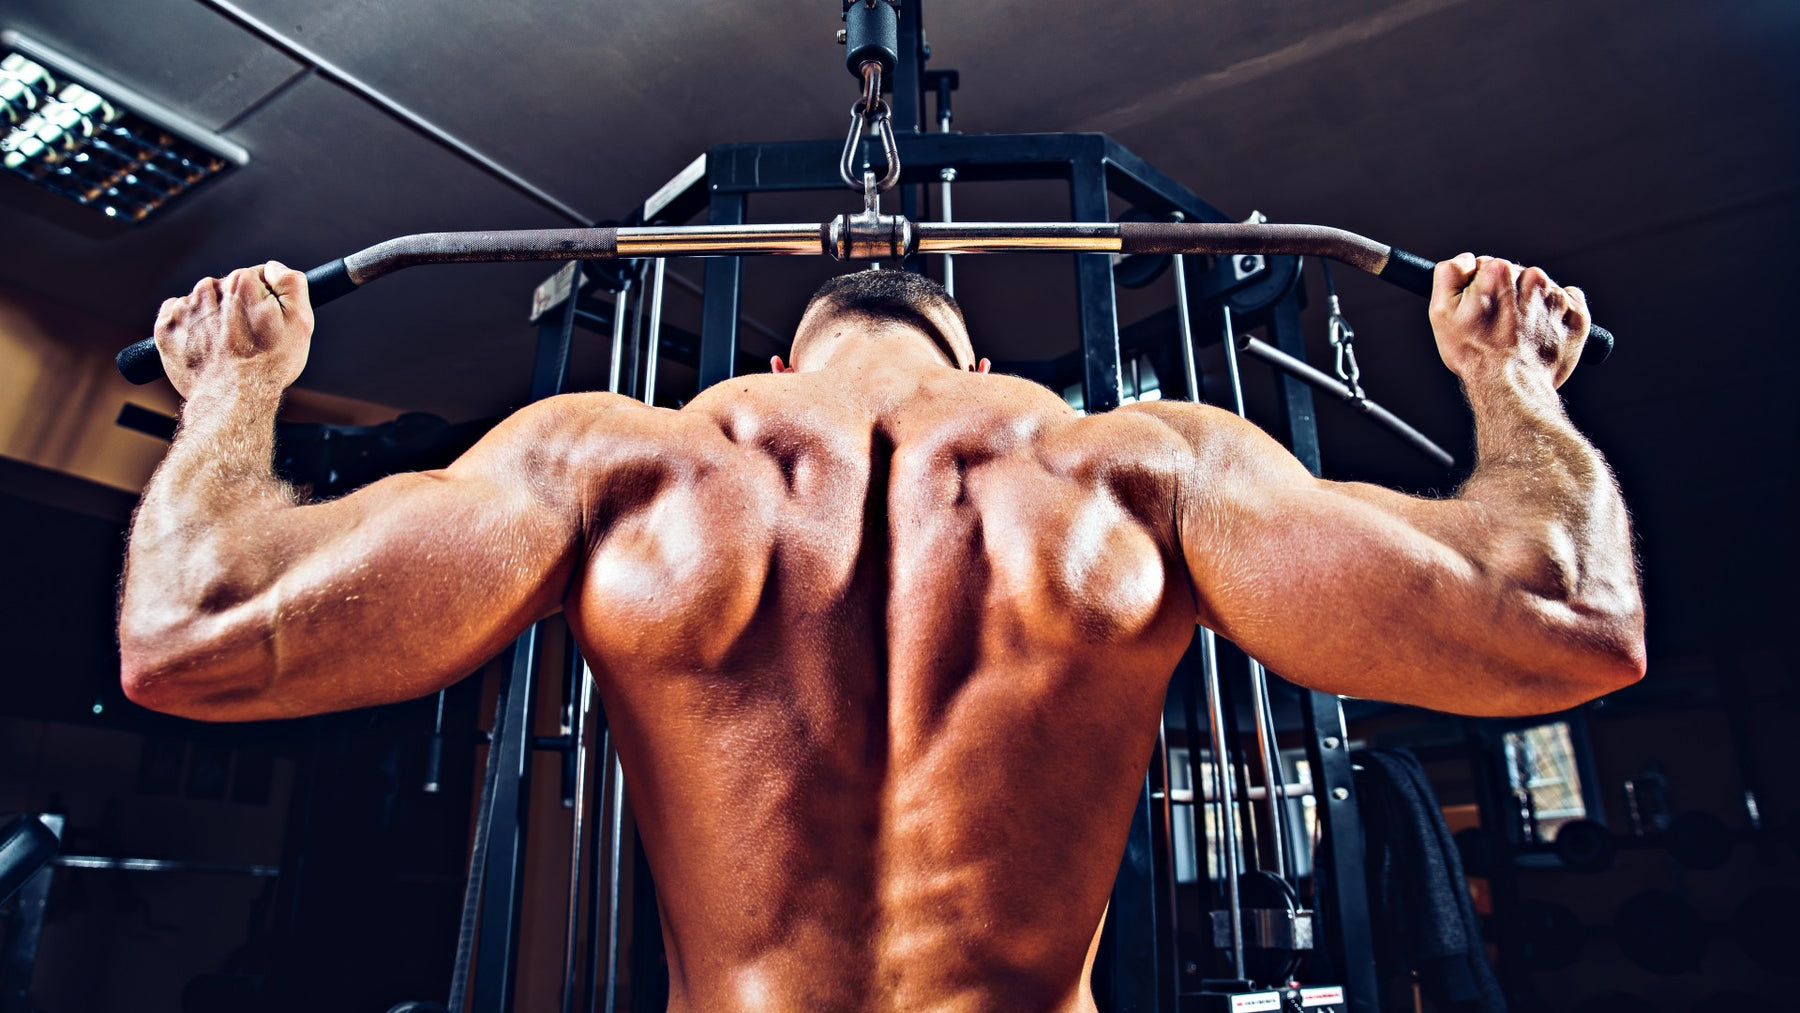 Your First Muscle Building Workout